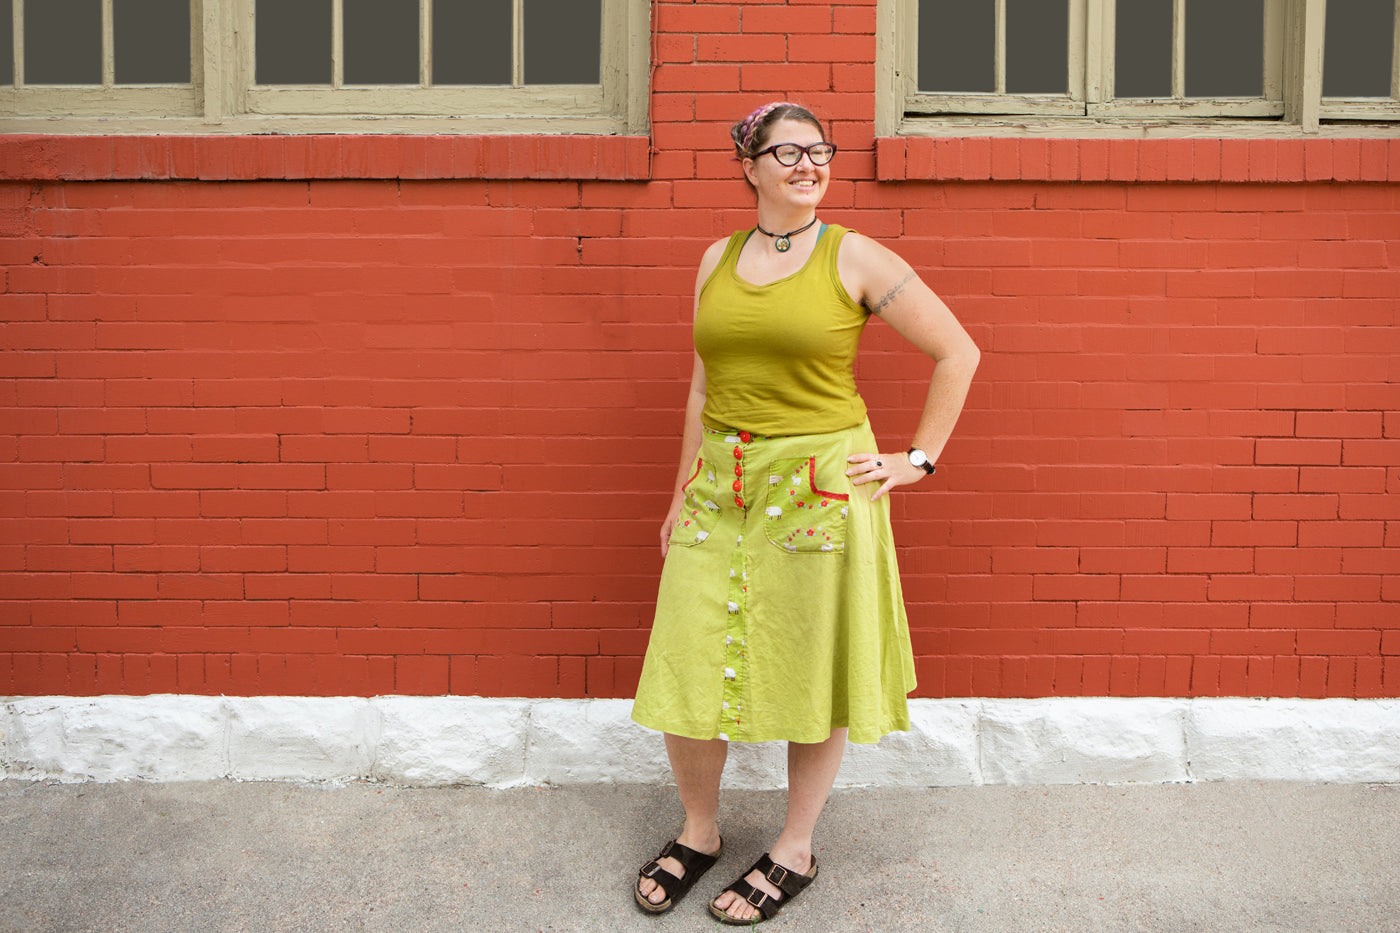 This is an image of a woman wearing a chartreuse tank top and green skirt standing in front of a red brick building